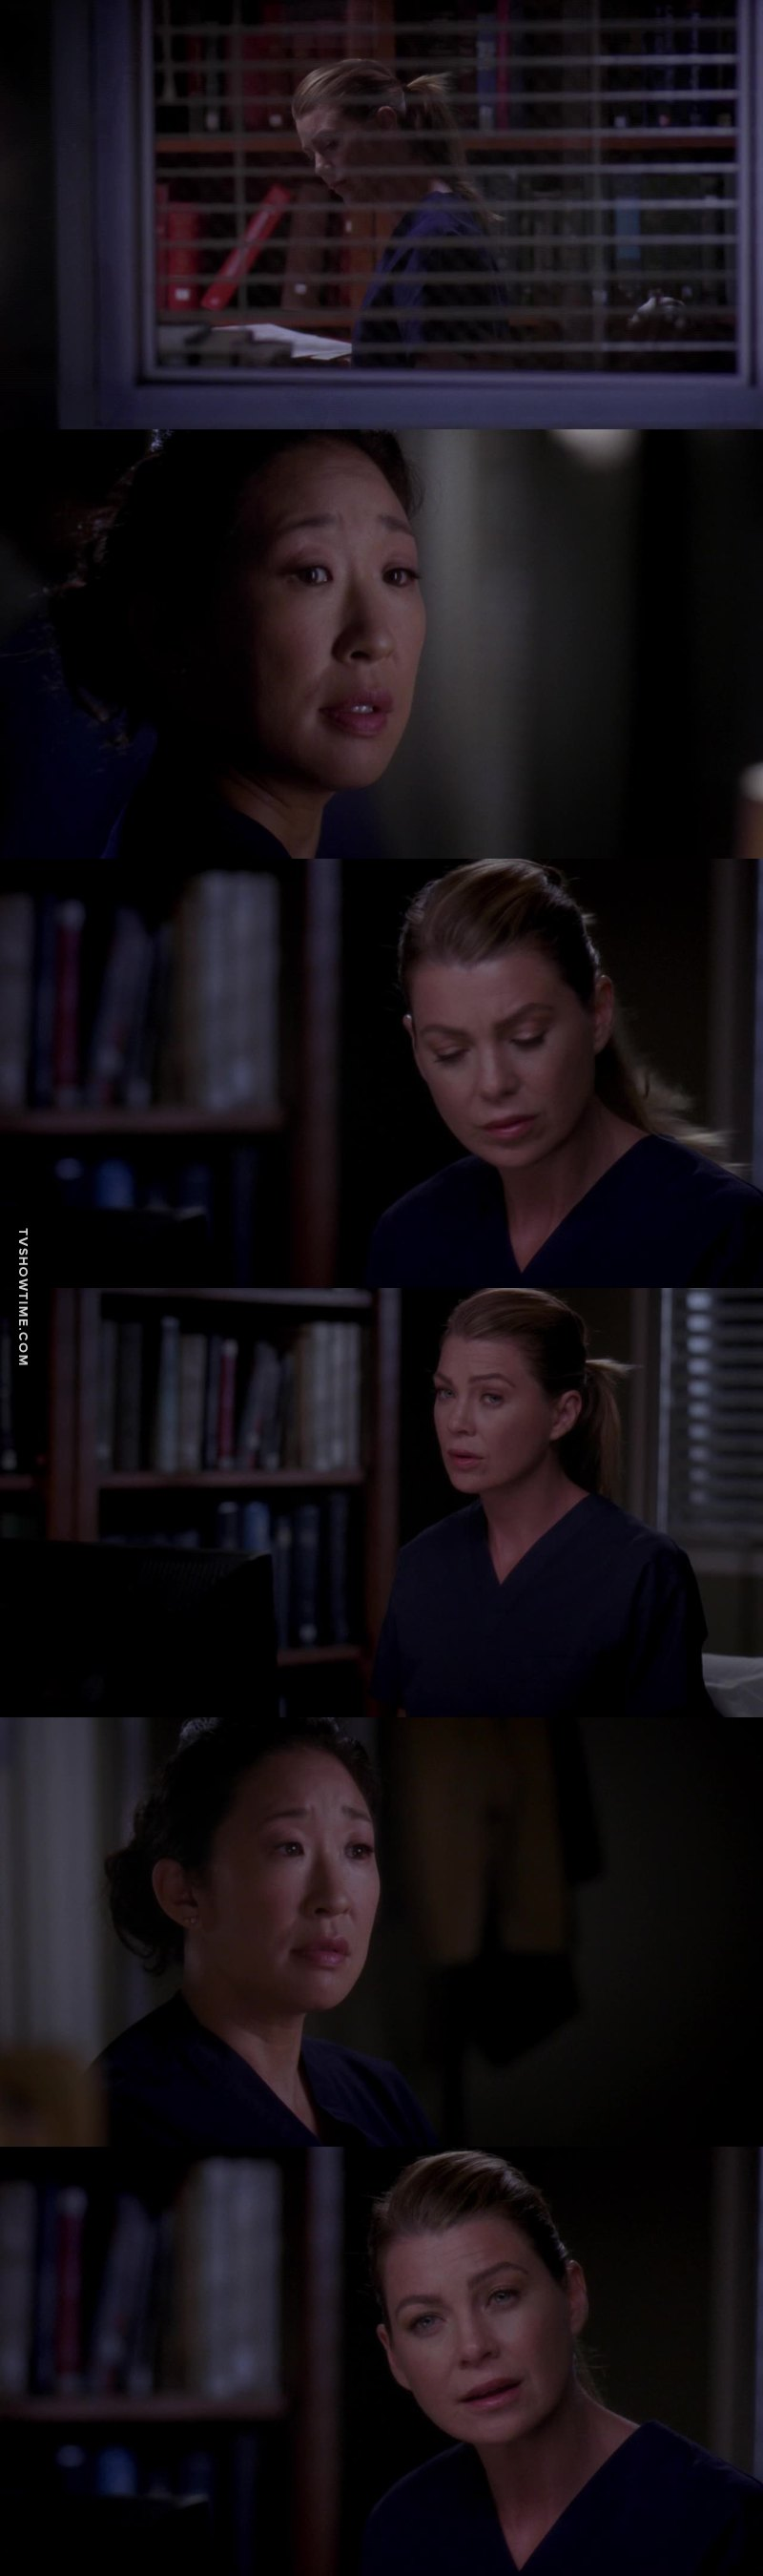 Meredith was right  Cristina doesnt have time for people who dont want the same things as her